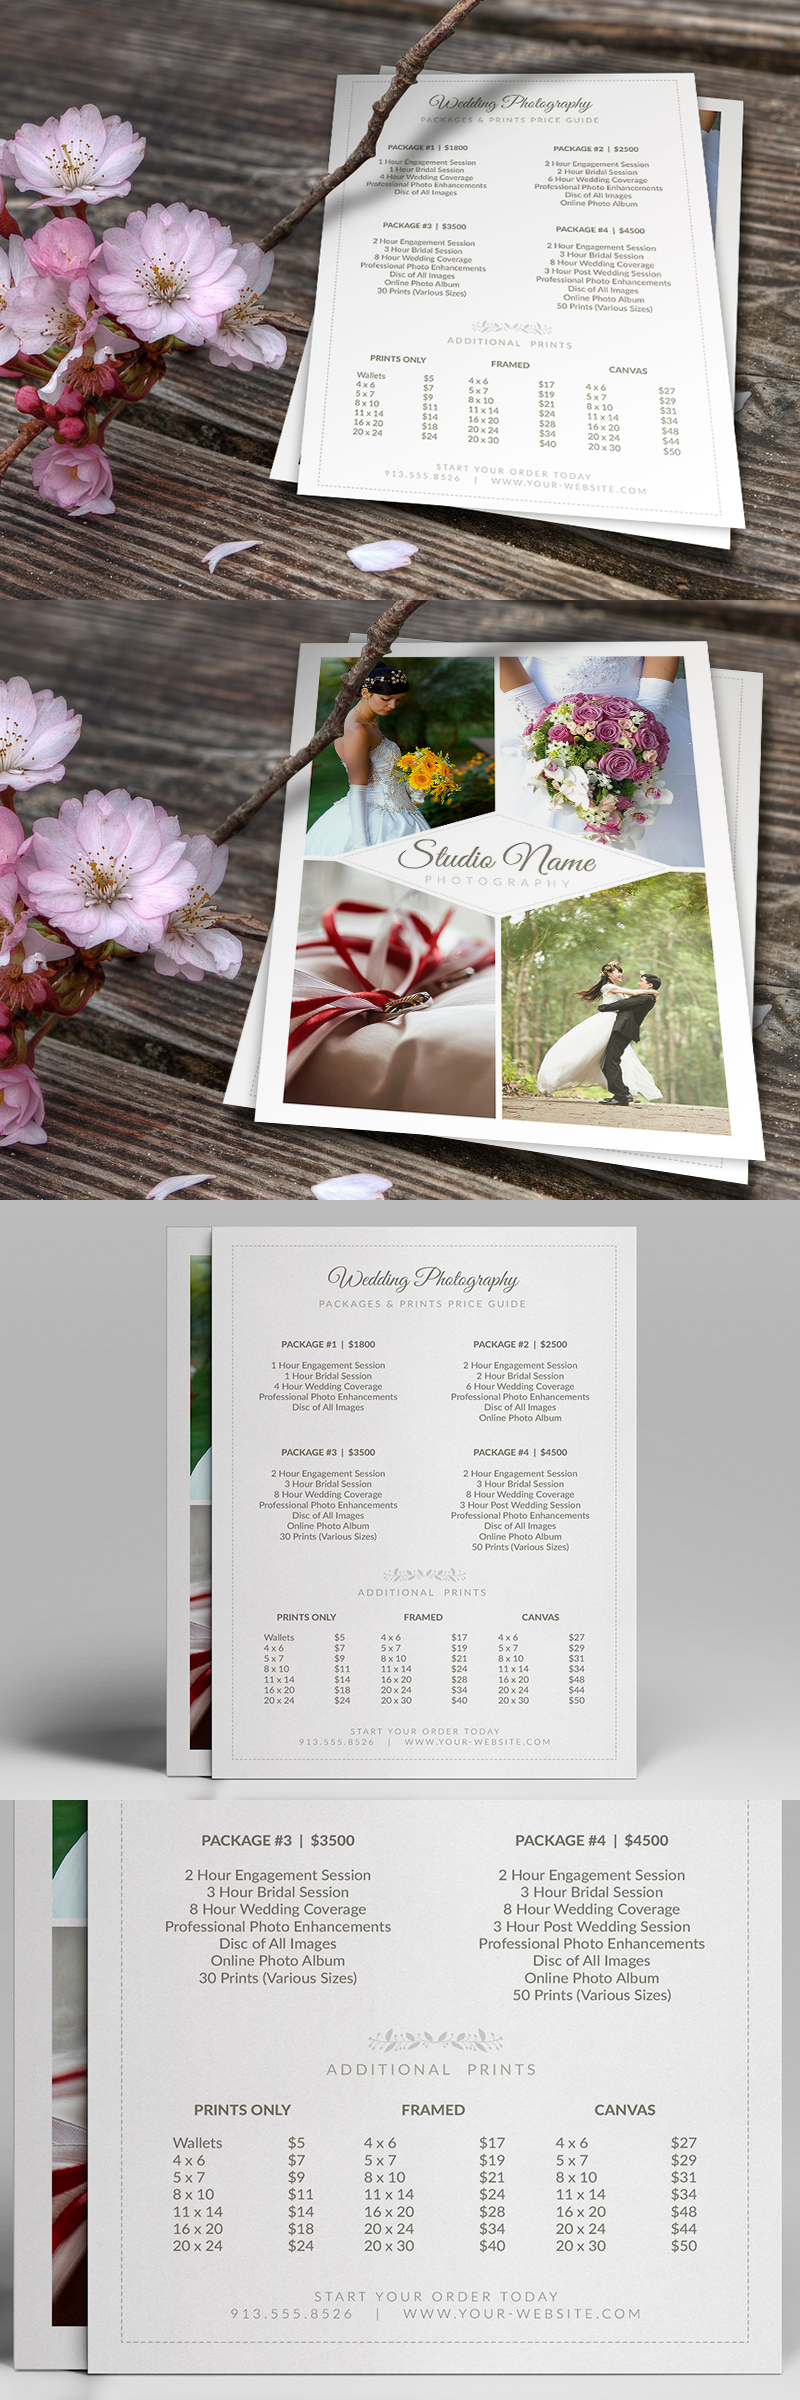 Wedding Photographer Pricing Guide / Price Sheet List 5x7 v2 ...